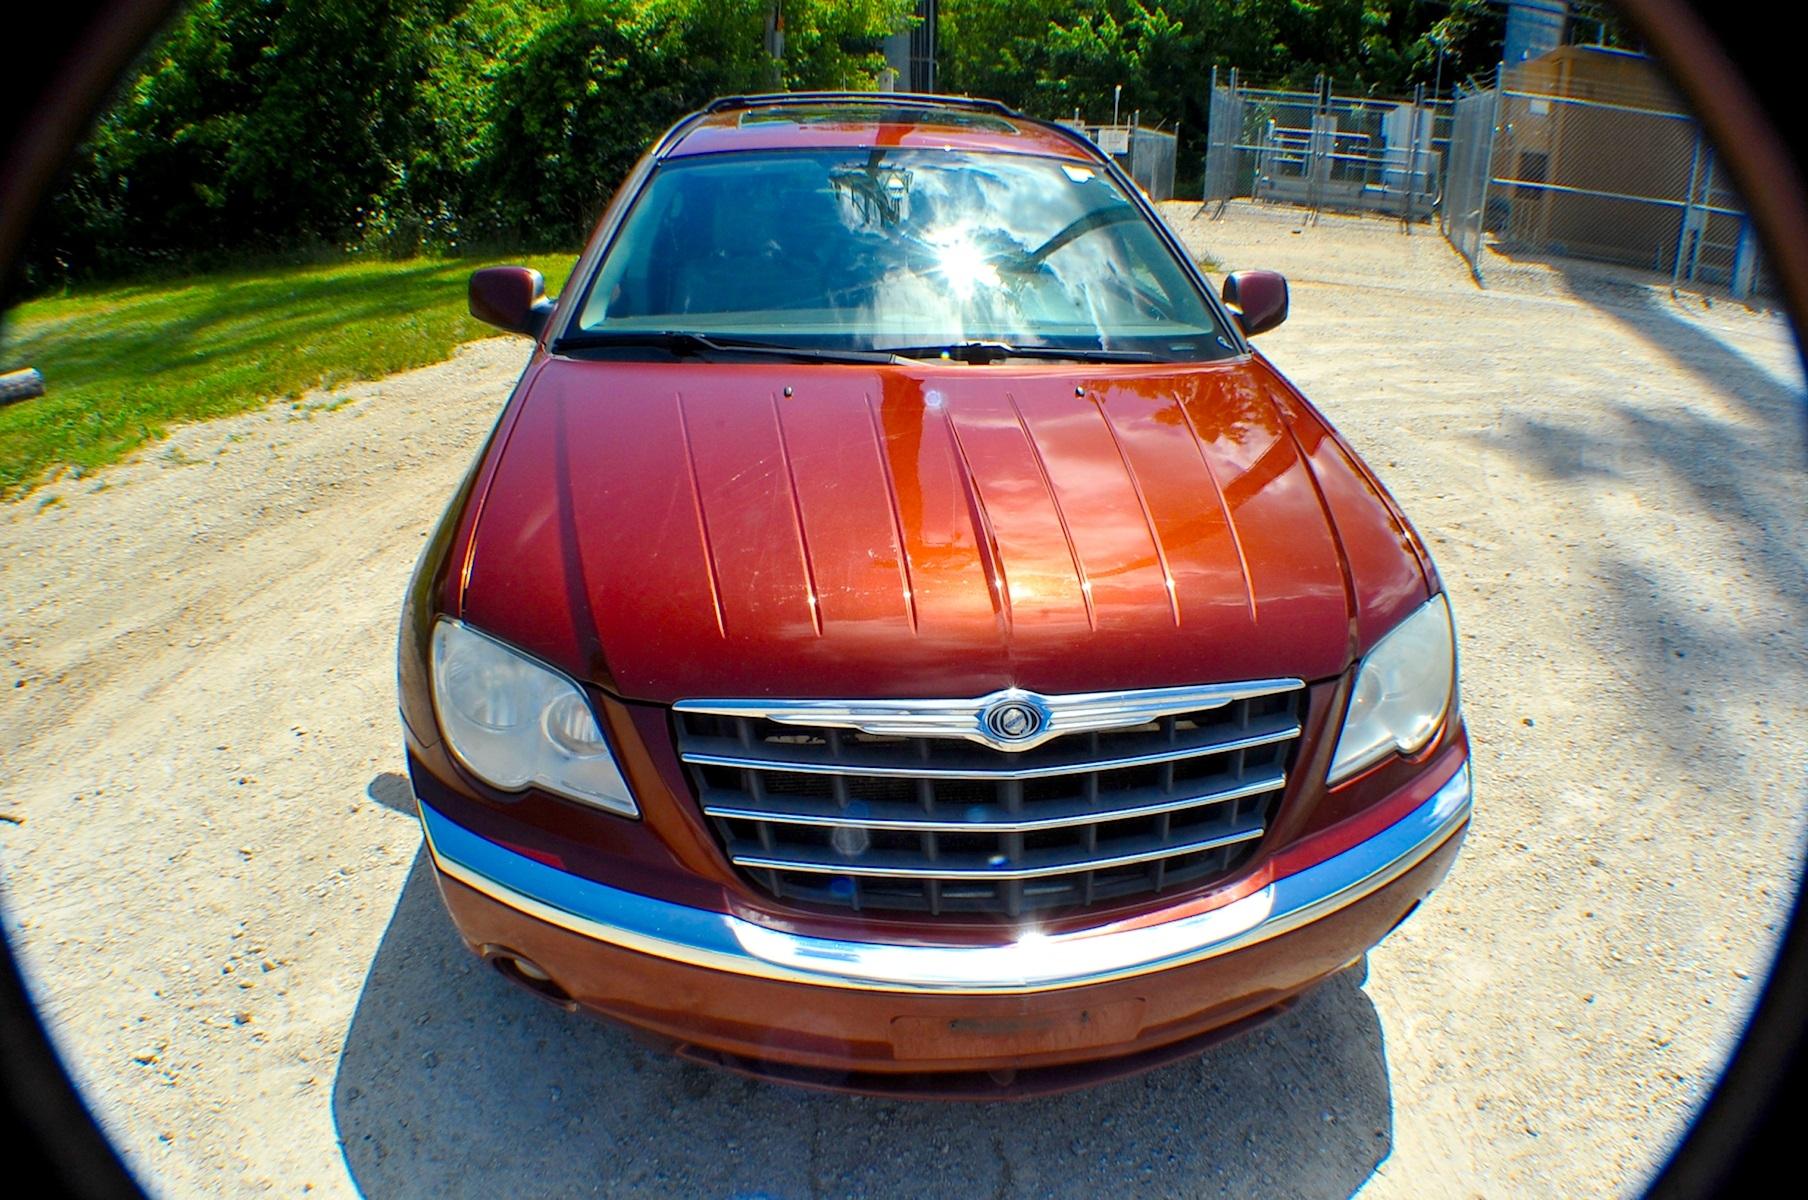 2007 Chrysler Pacifica Bronze Limited SUV Sale Gurnee Kenosha Mchenry Chicago Illinois